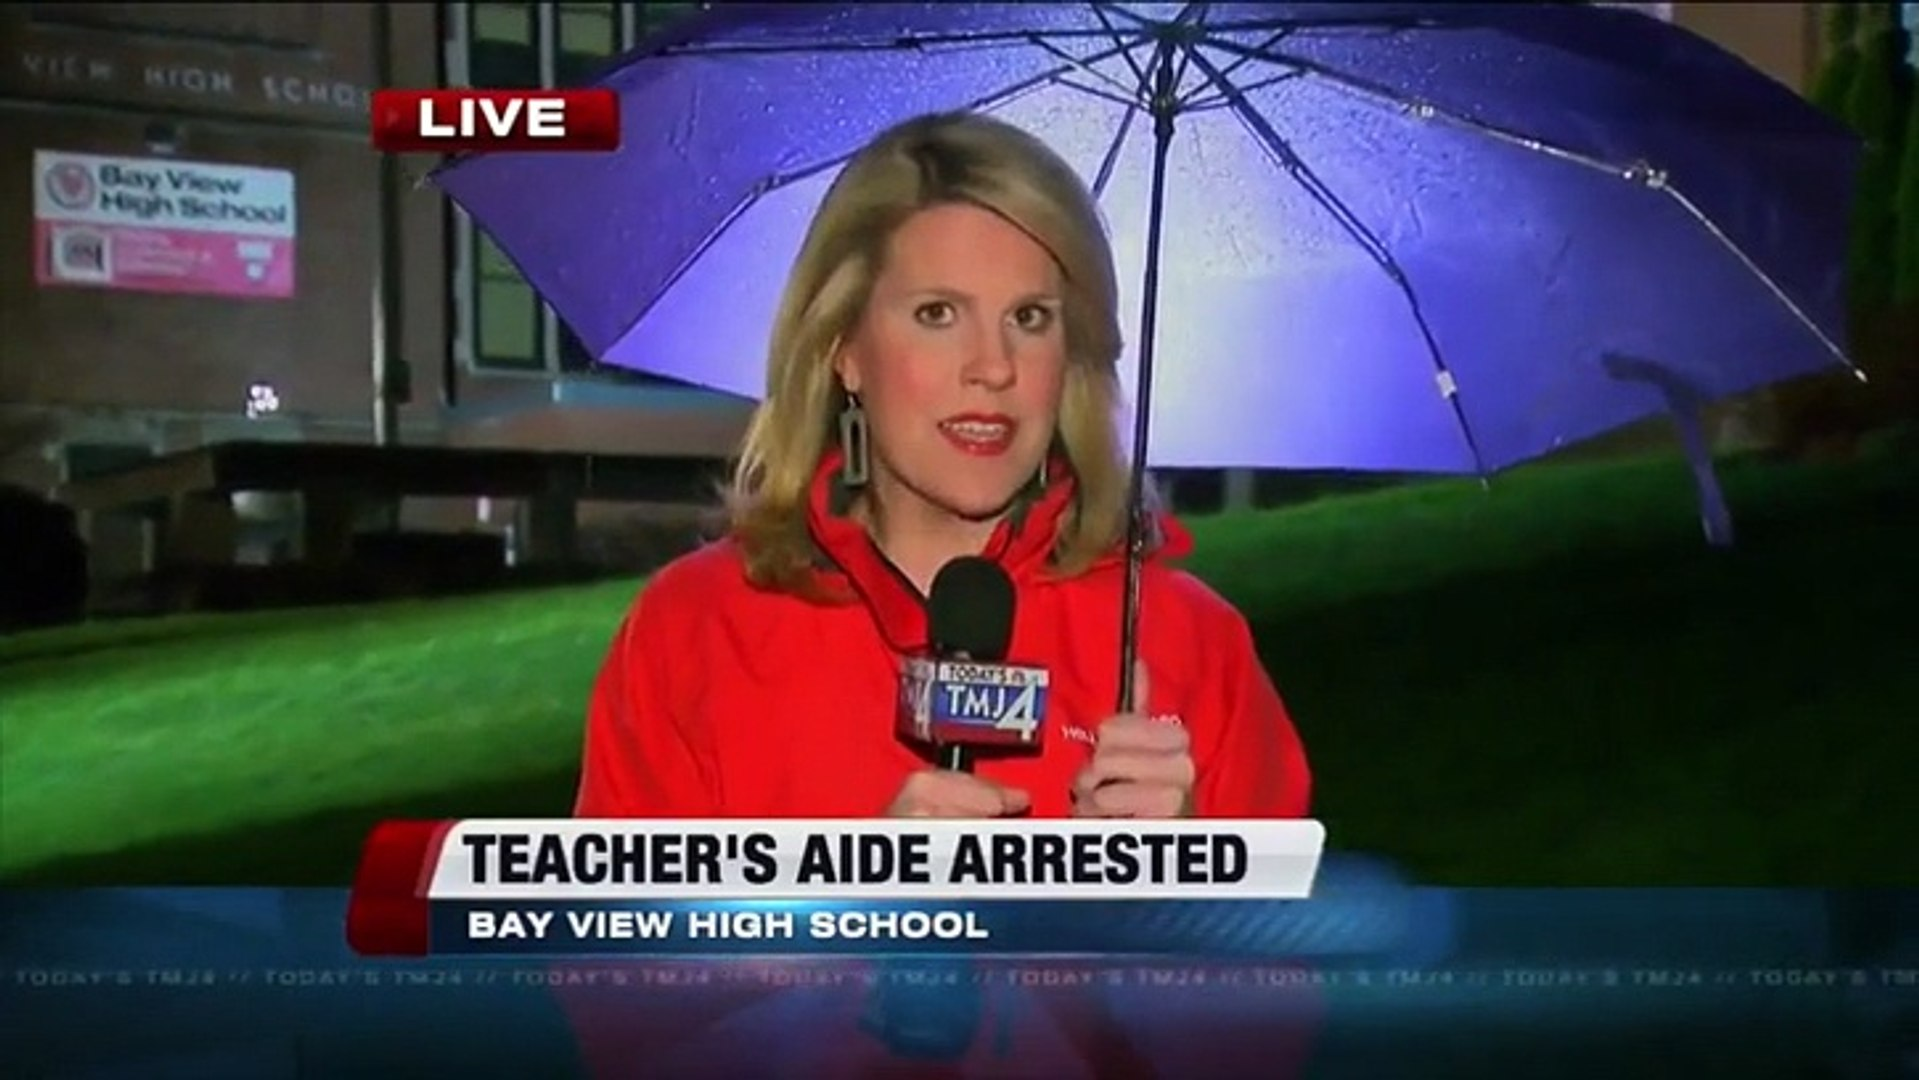 High School Teacher's Aide Arrested After Fighting Student-Funny & Entertainment Videos-By